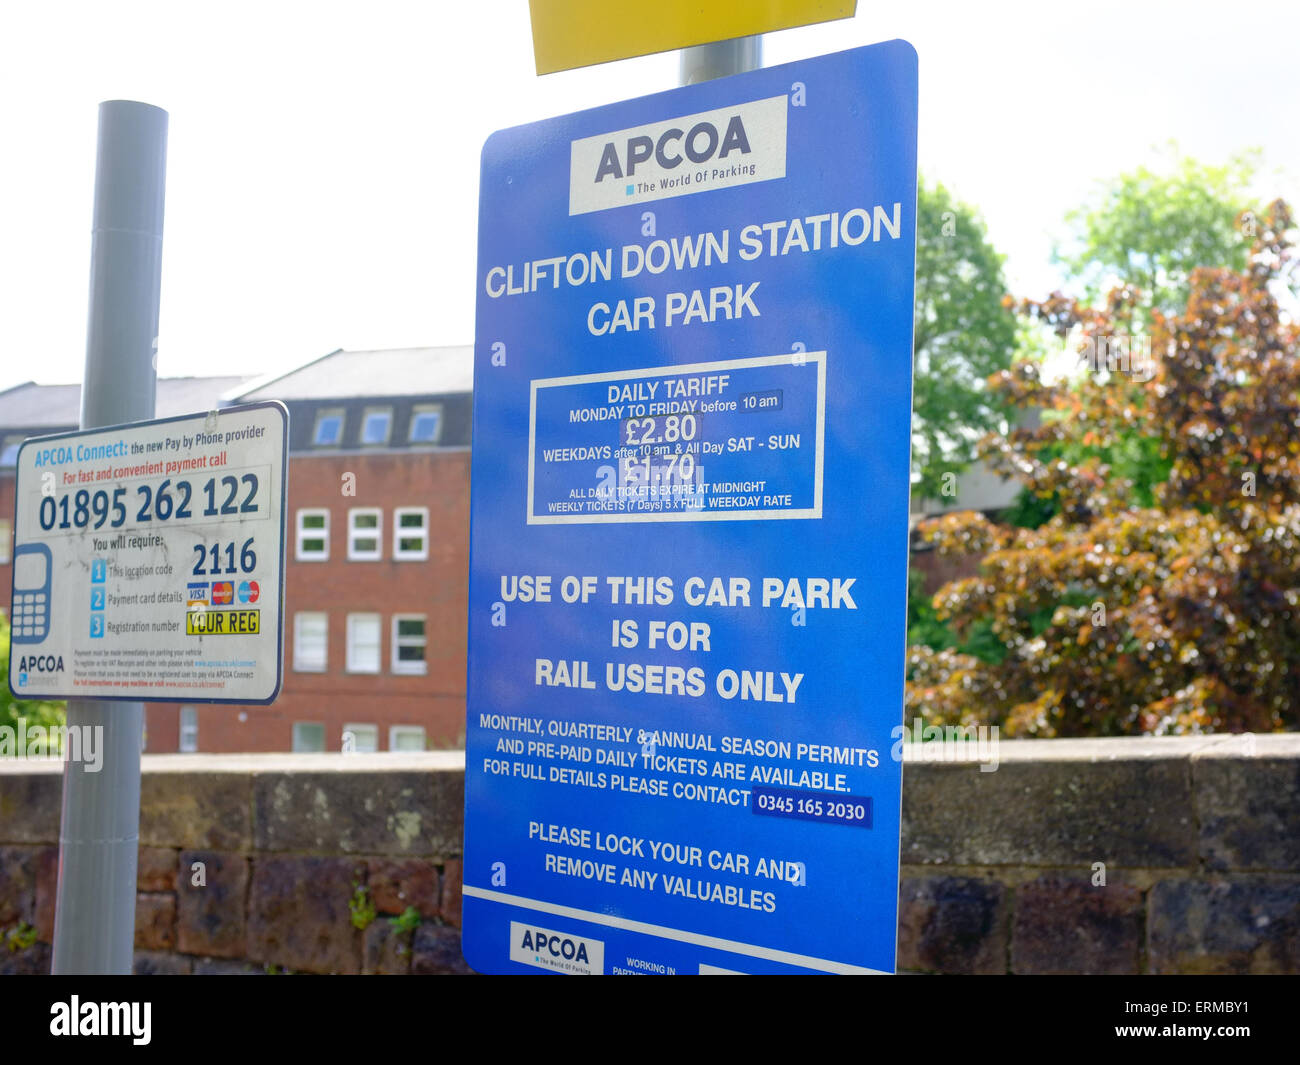 A daily tariff parking sign at the Clifton Down Station car park in Bristol. - Stock Image